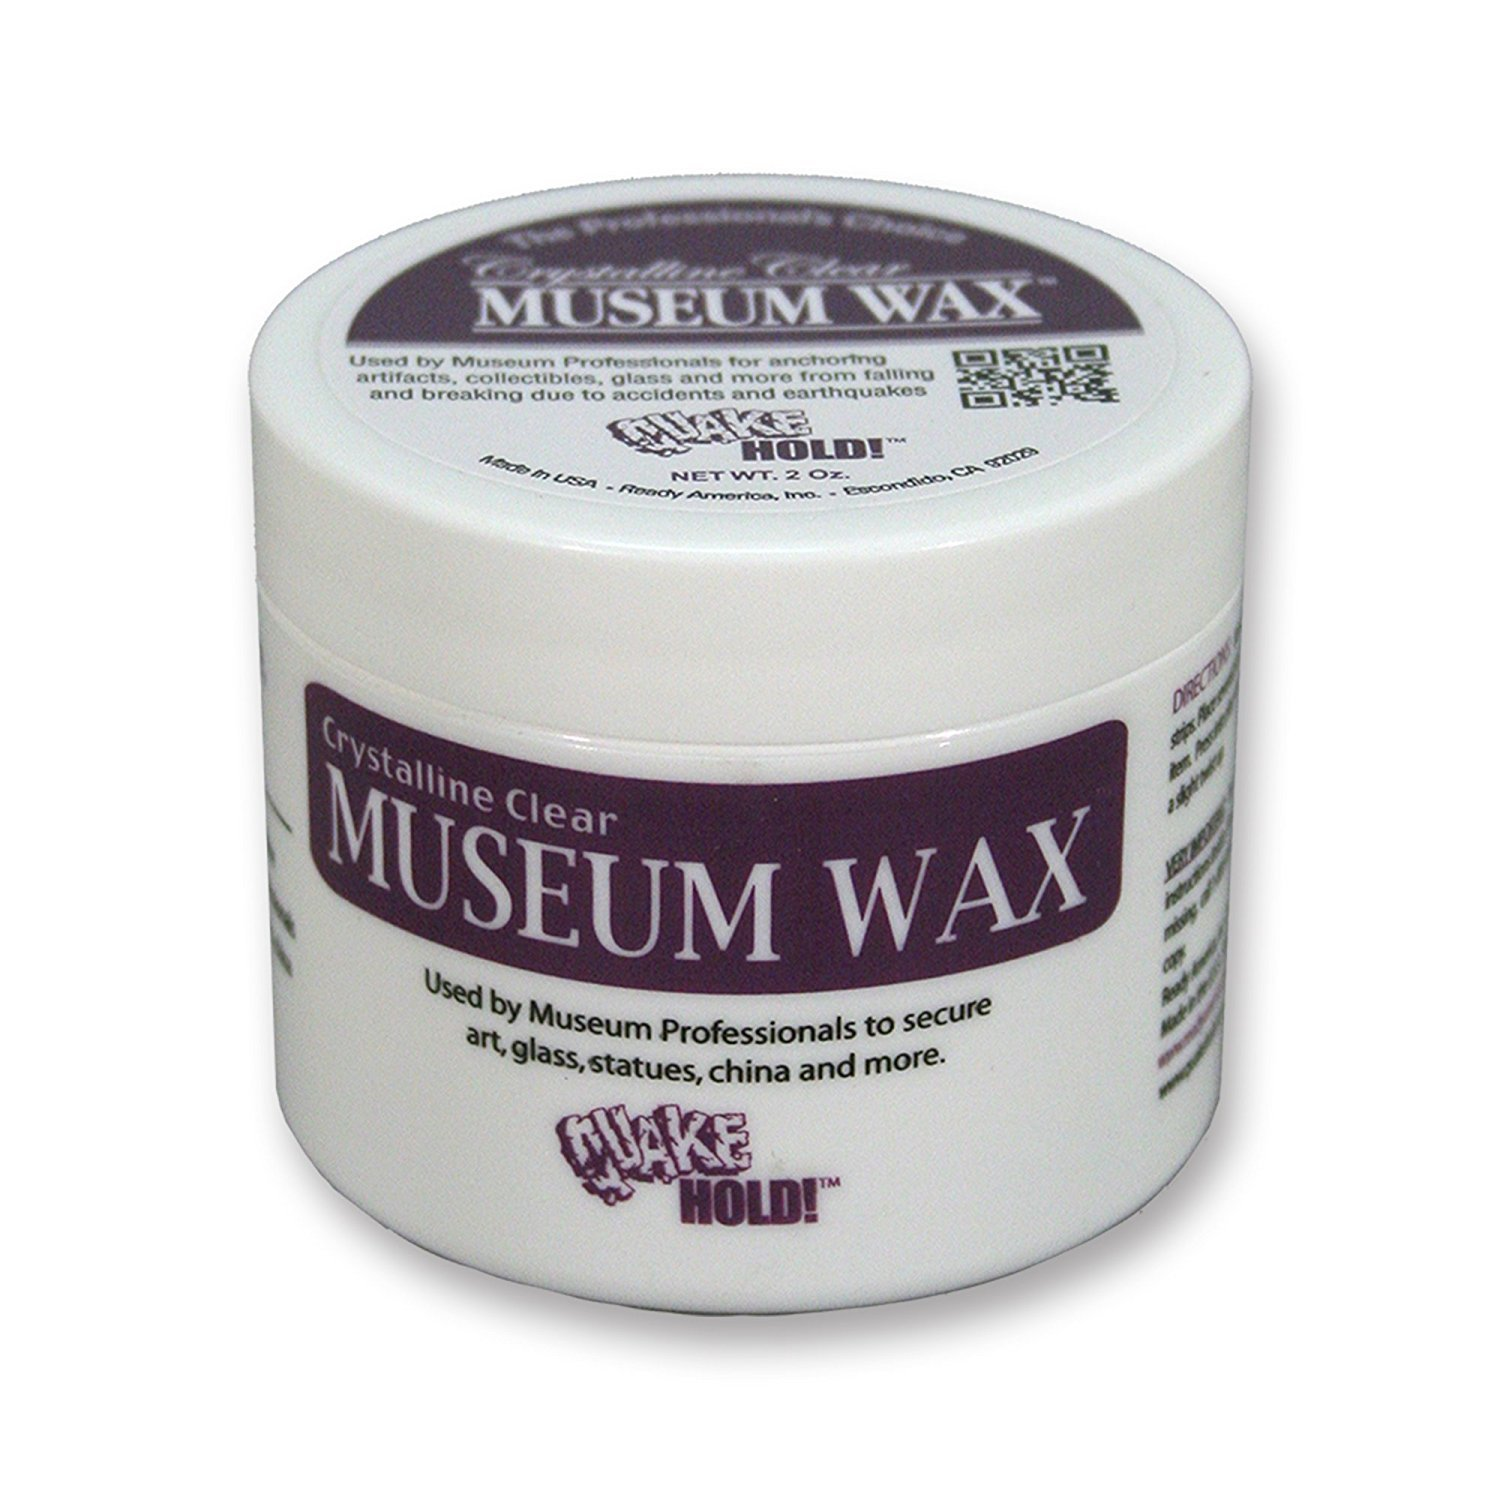 Quakehold! 66111 2-Ounce Museum Wax … (2 Pack)